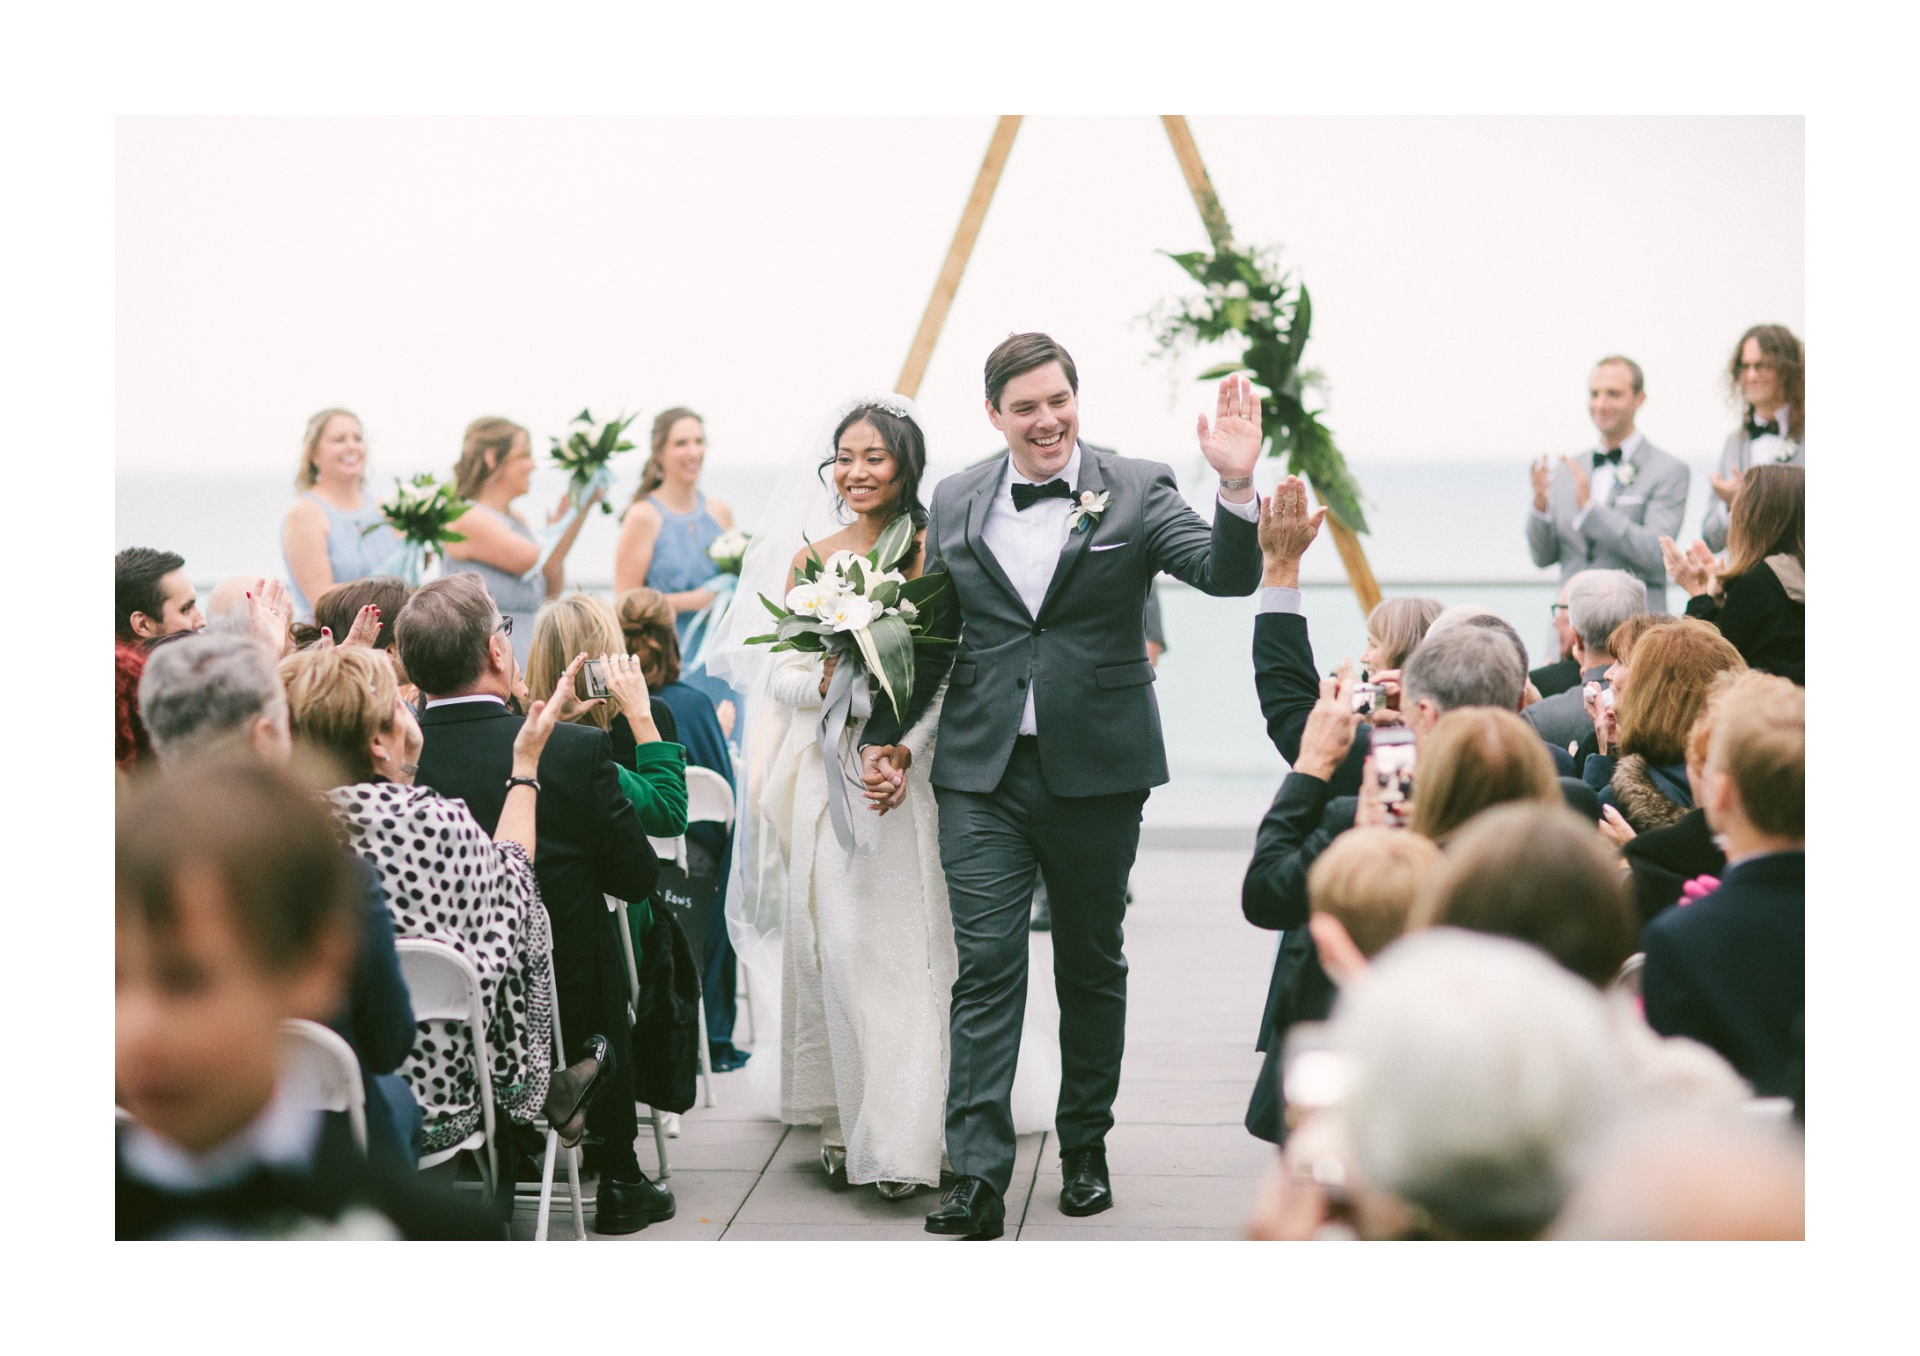 Wedding at Ernst and Young Rooftop in Downtown Cleveland 2 21.jpg